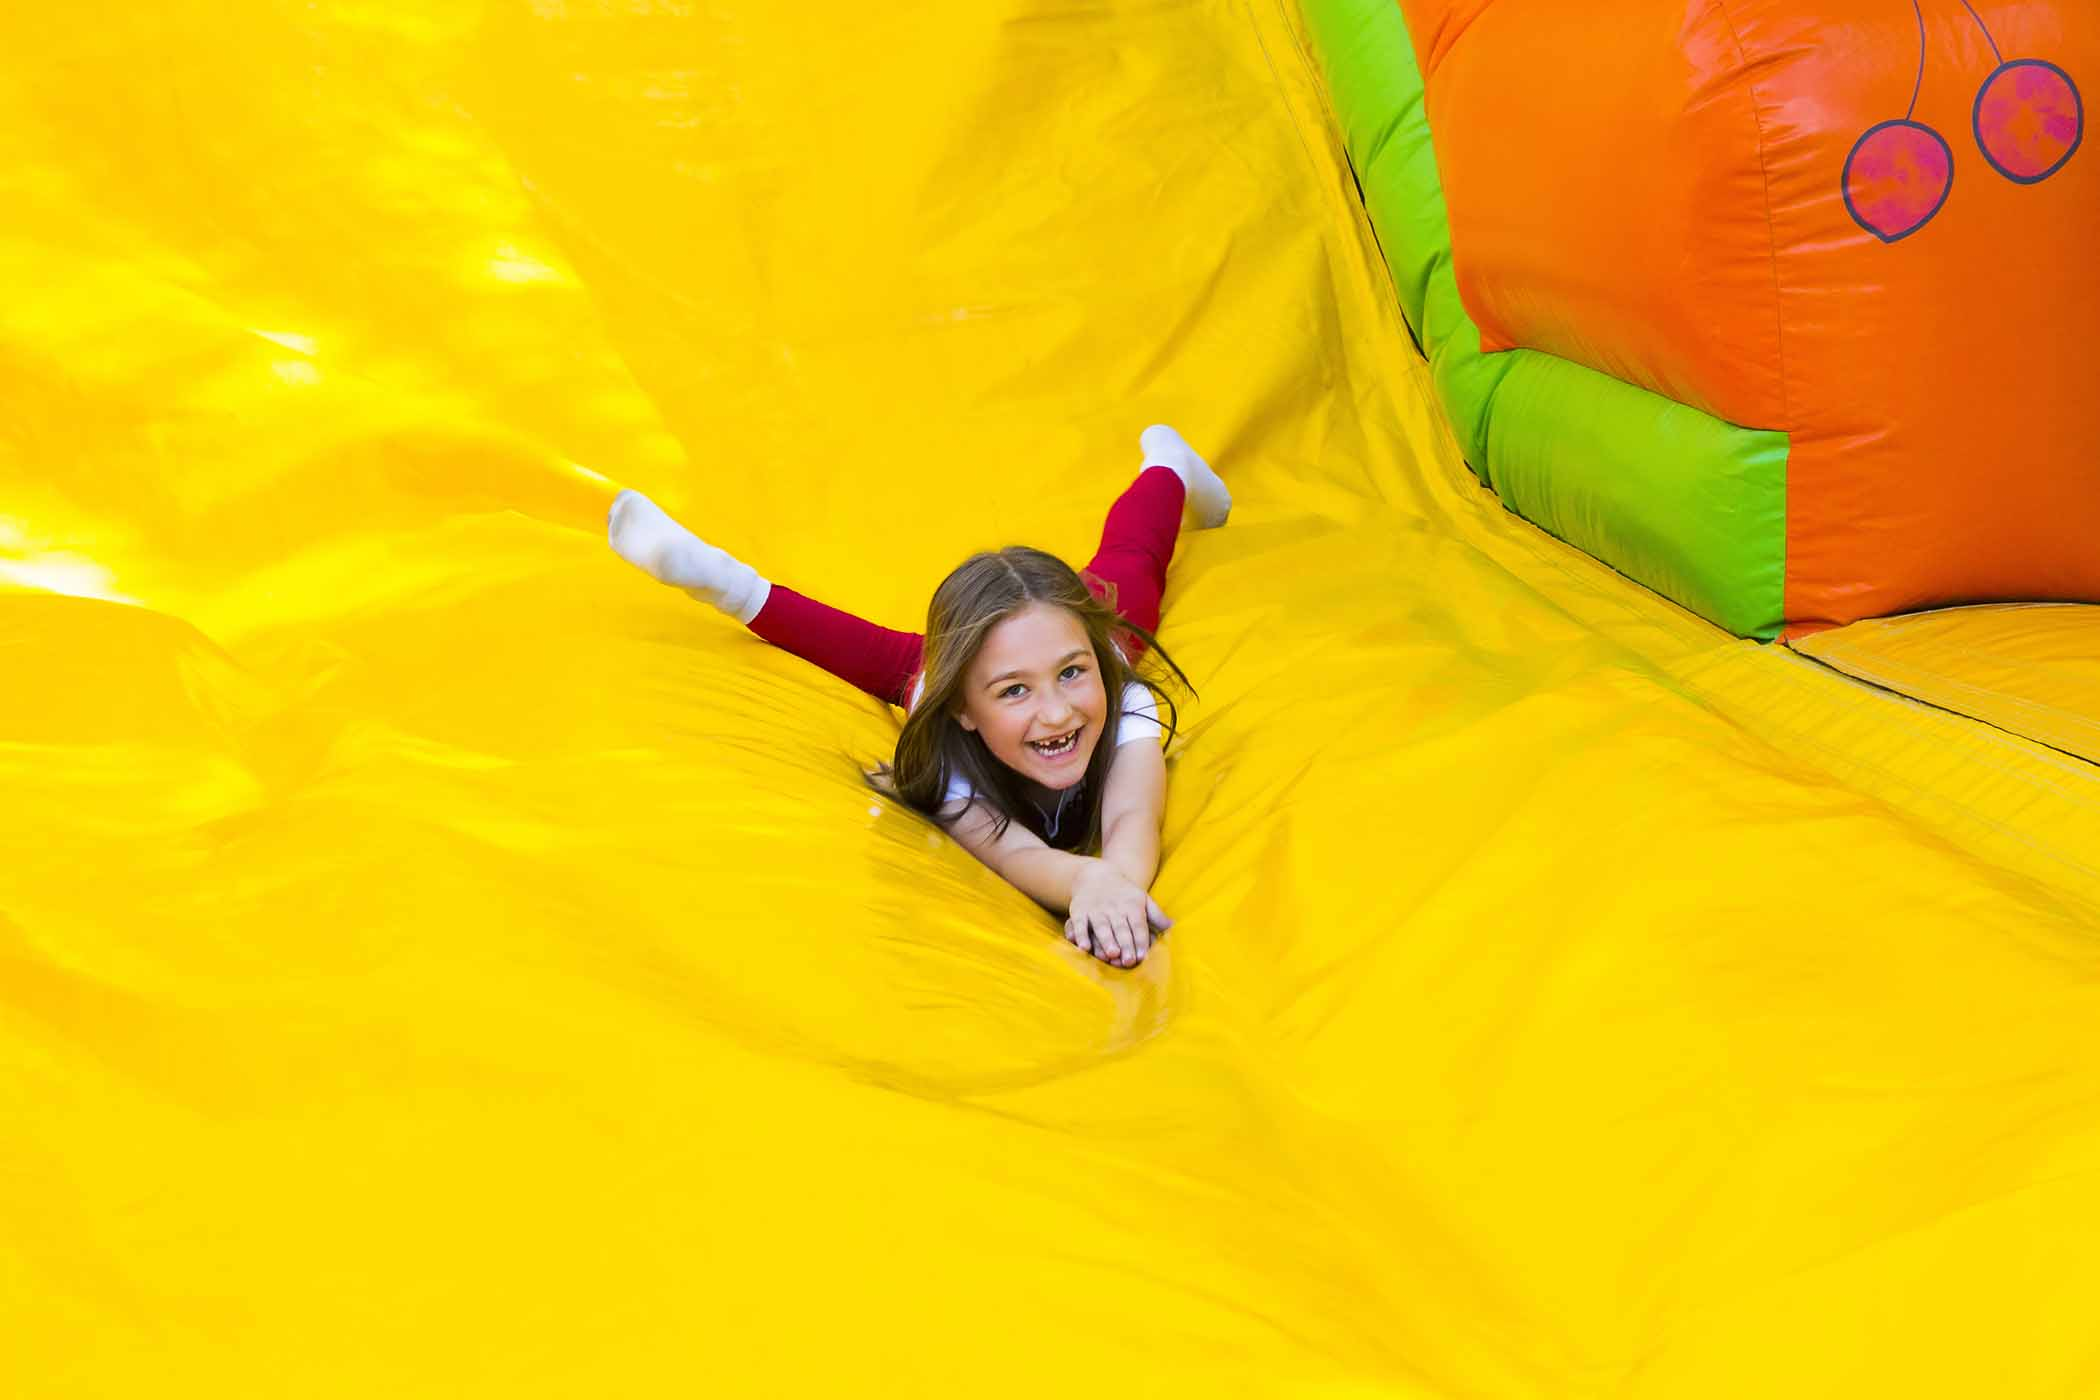 Kid sliding down bouncy house